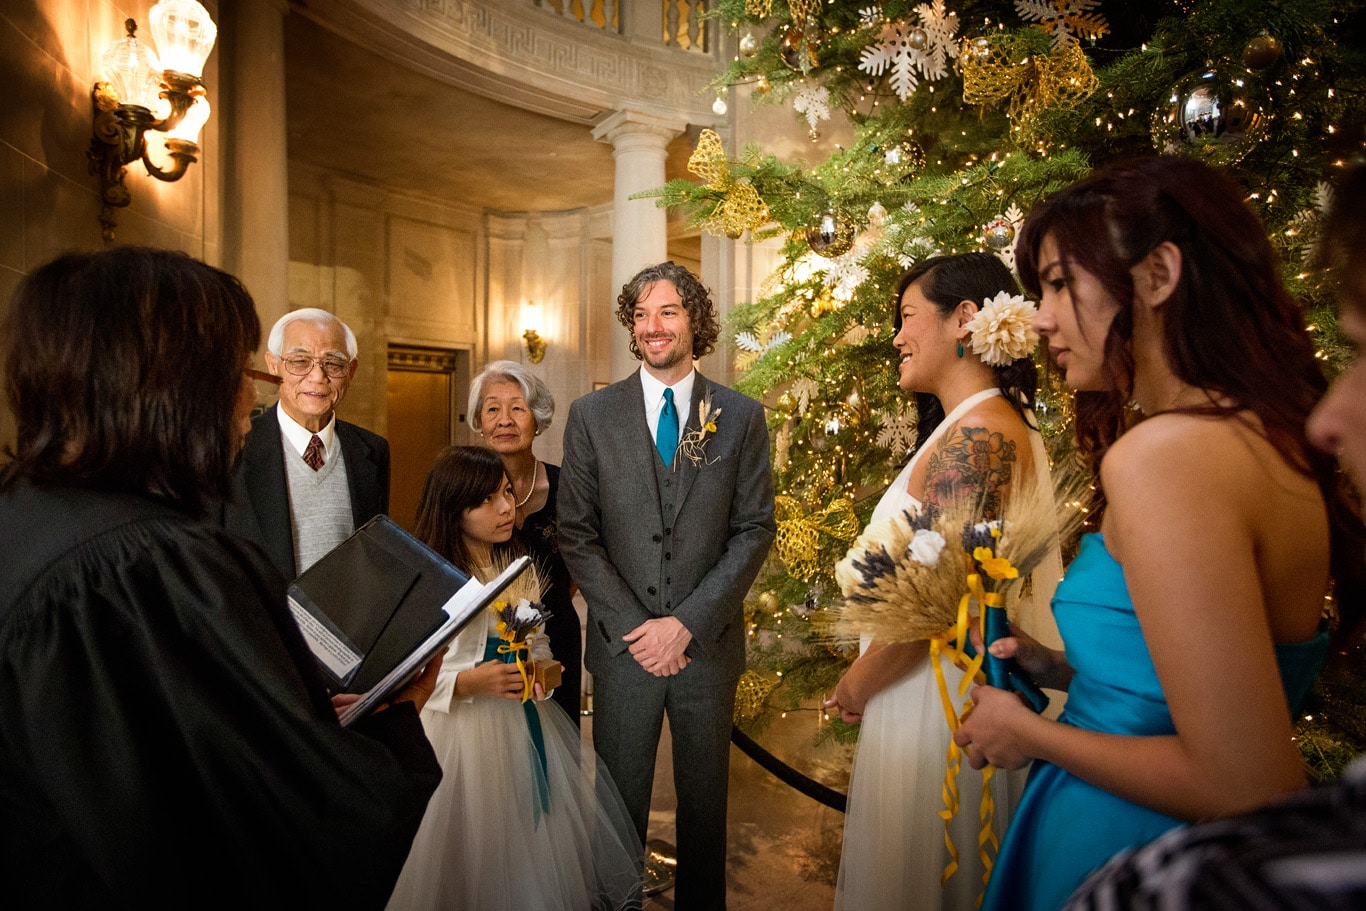 Standard Courthouse Wedding Vows at San Francisco City Hall